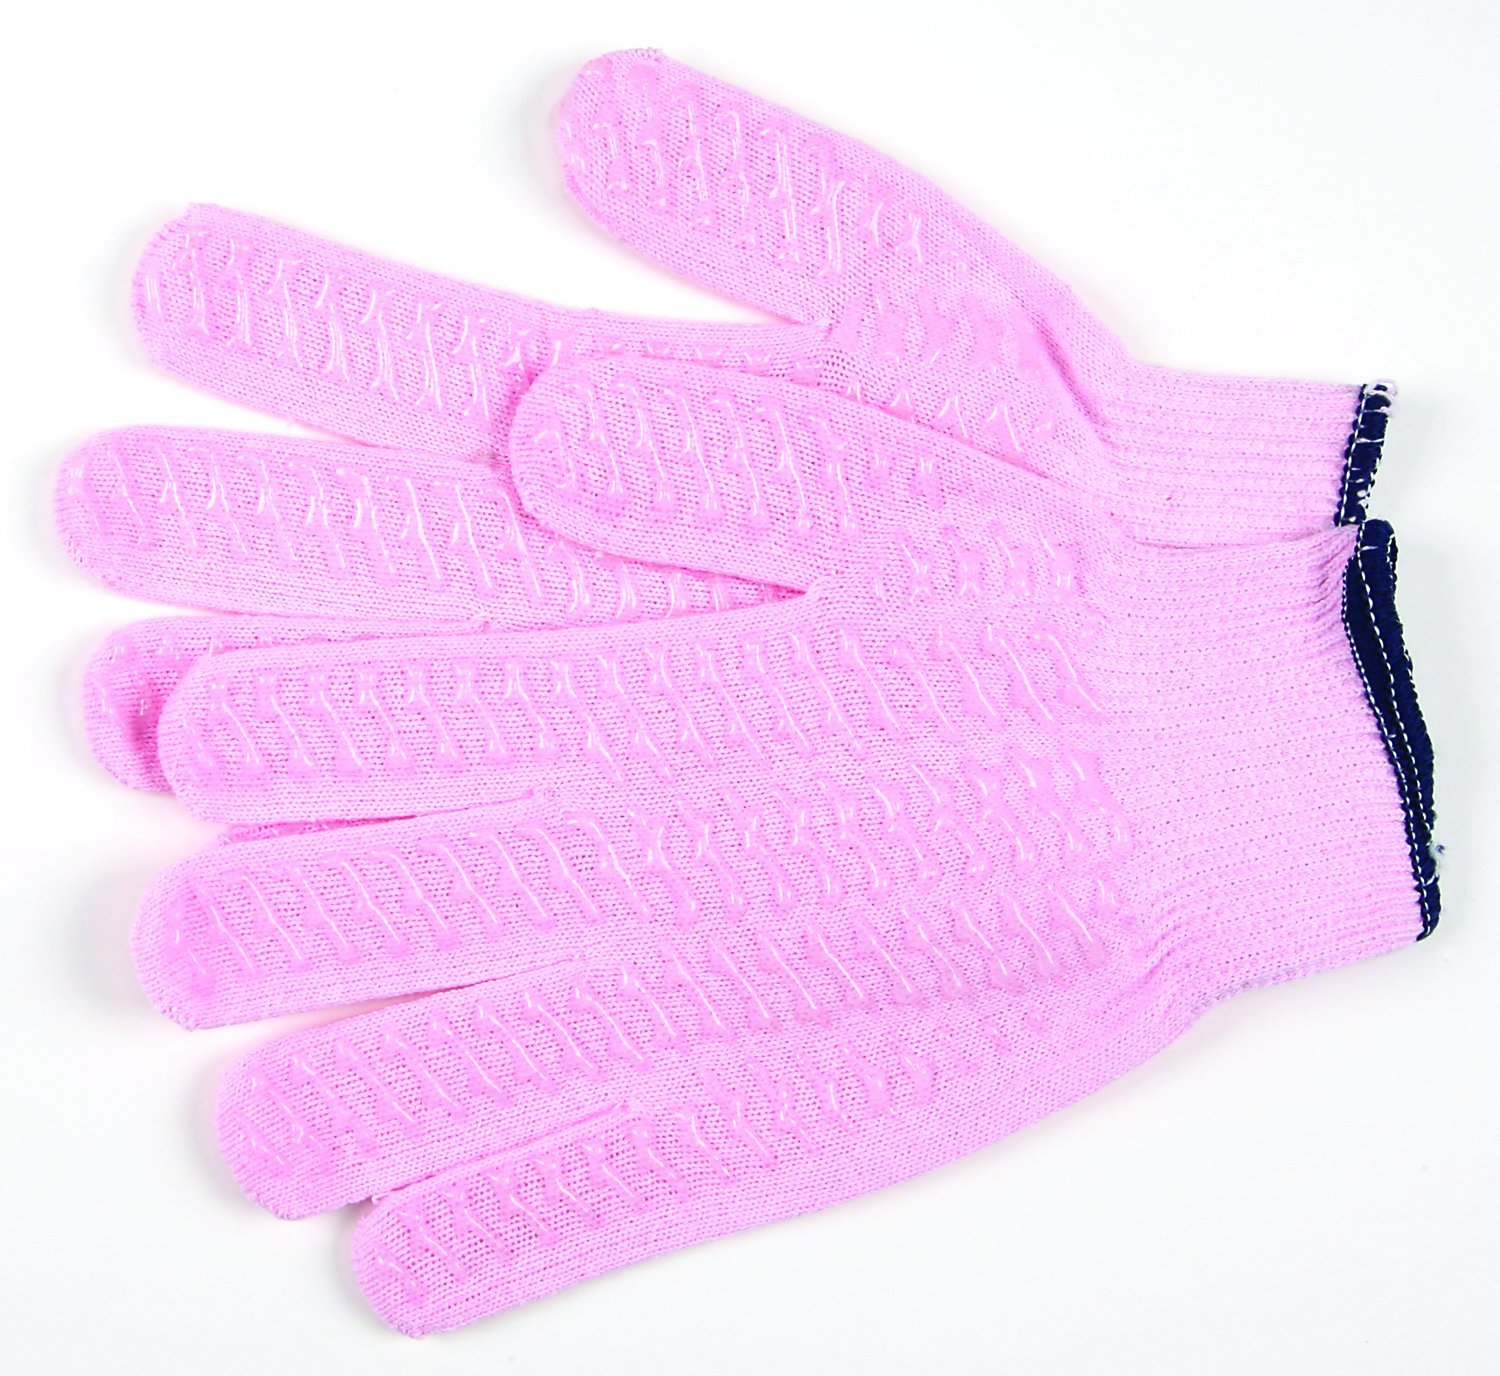 MCR Safety 9614PXS Cotton/Polyester 13-Gauge String Knitted Multi-Purpose Gloves with Continuous Cuff, Pink, X-Small, 1-Pair by MCR Safety B009A5FSXK